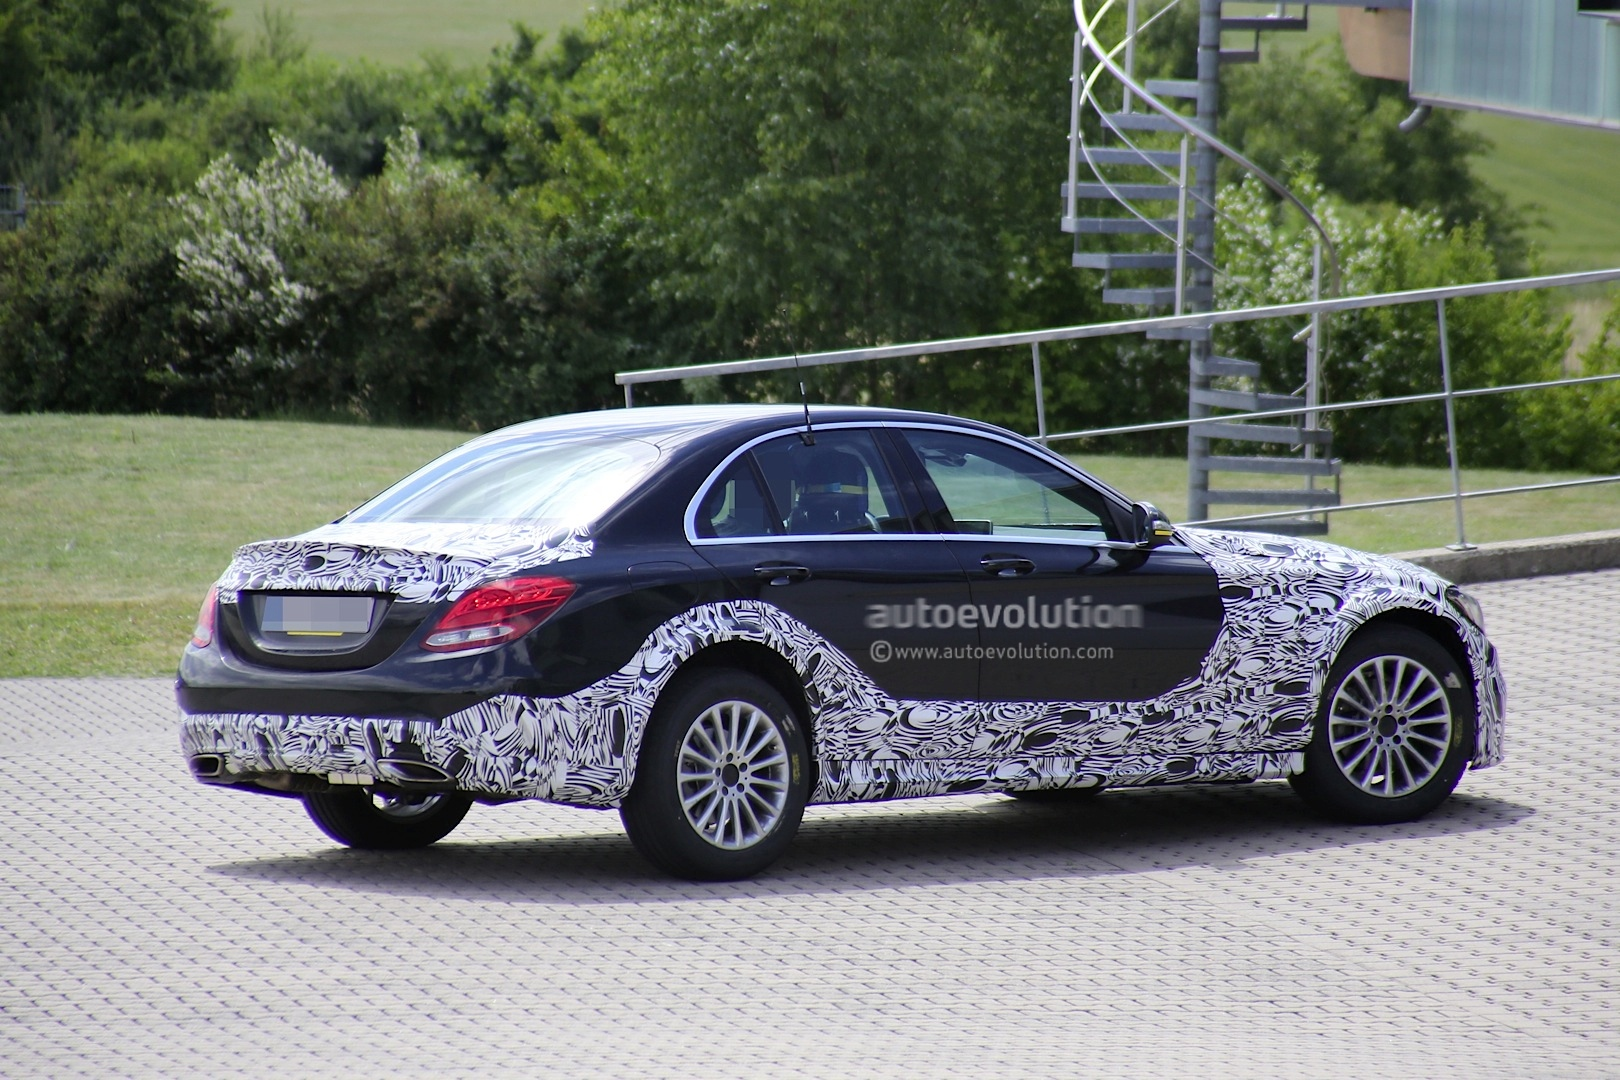 World Car Kia >> 2016 E-Class W213 Mule Based on Current C-Class Spied - autoevolution